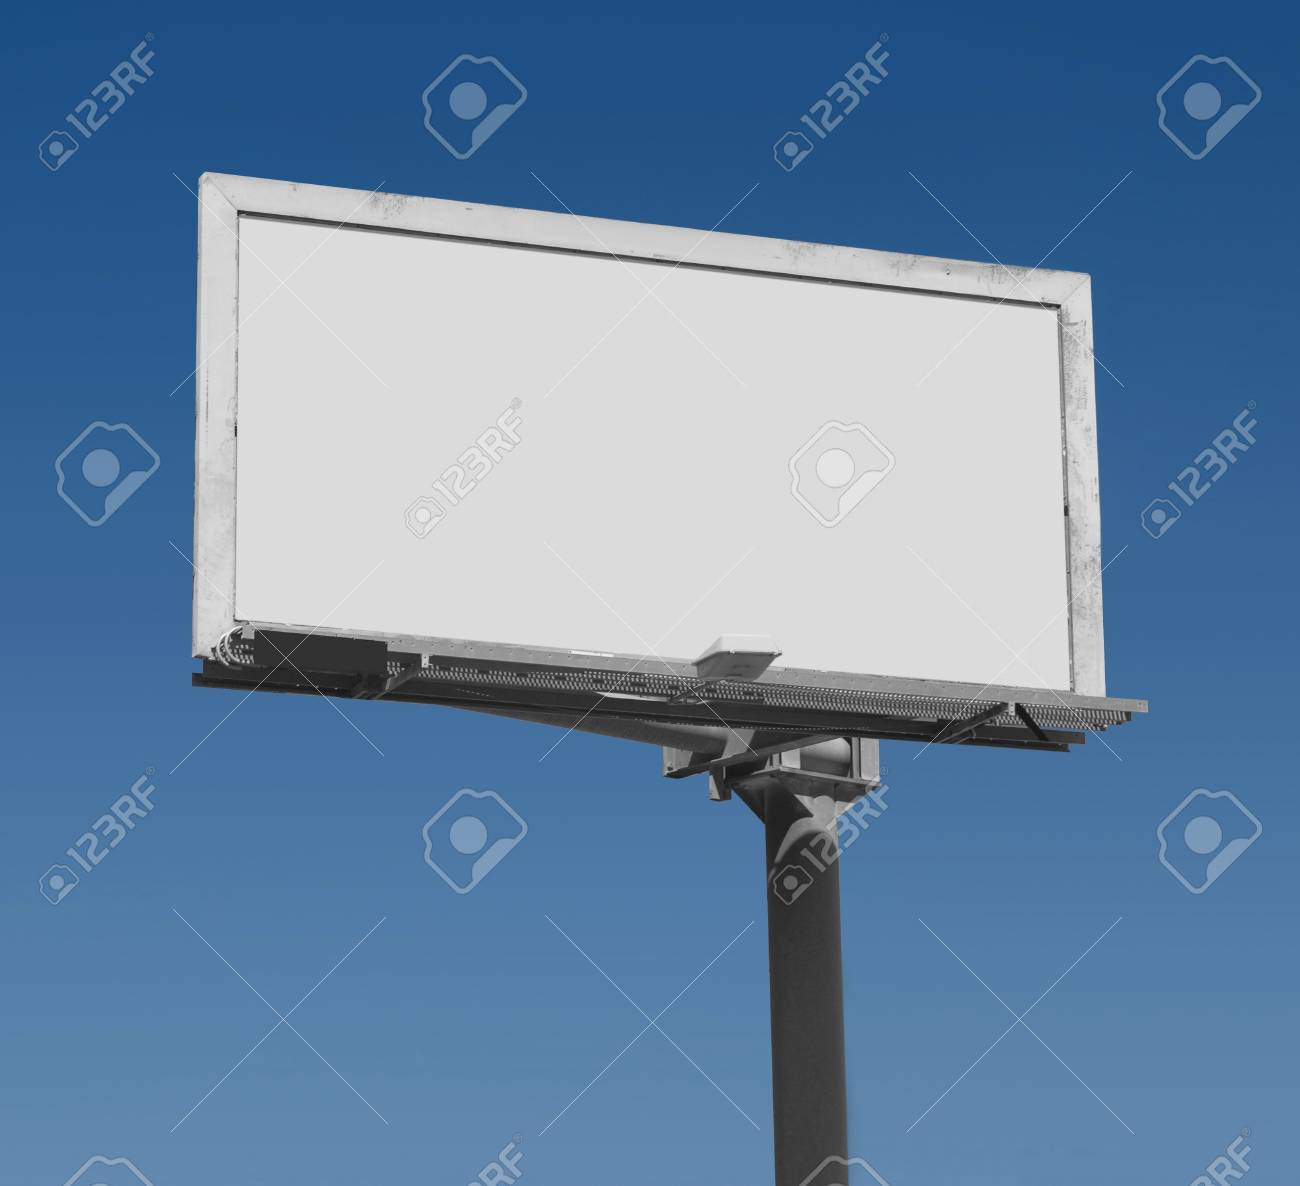 Blank Freestanding Billboard Against A Dark Blue Sky With Clipping ...